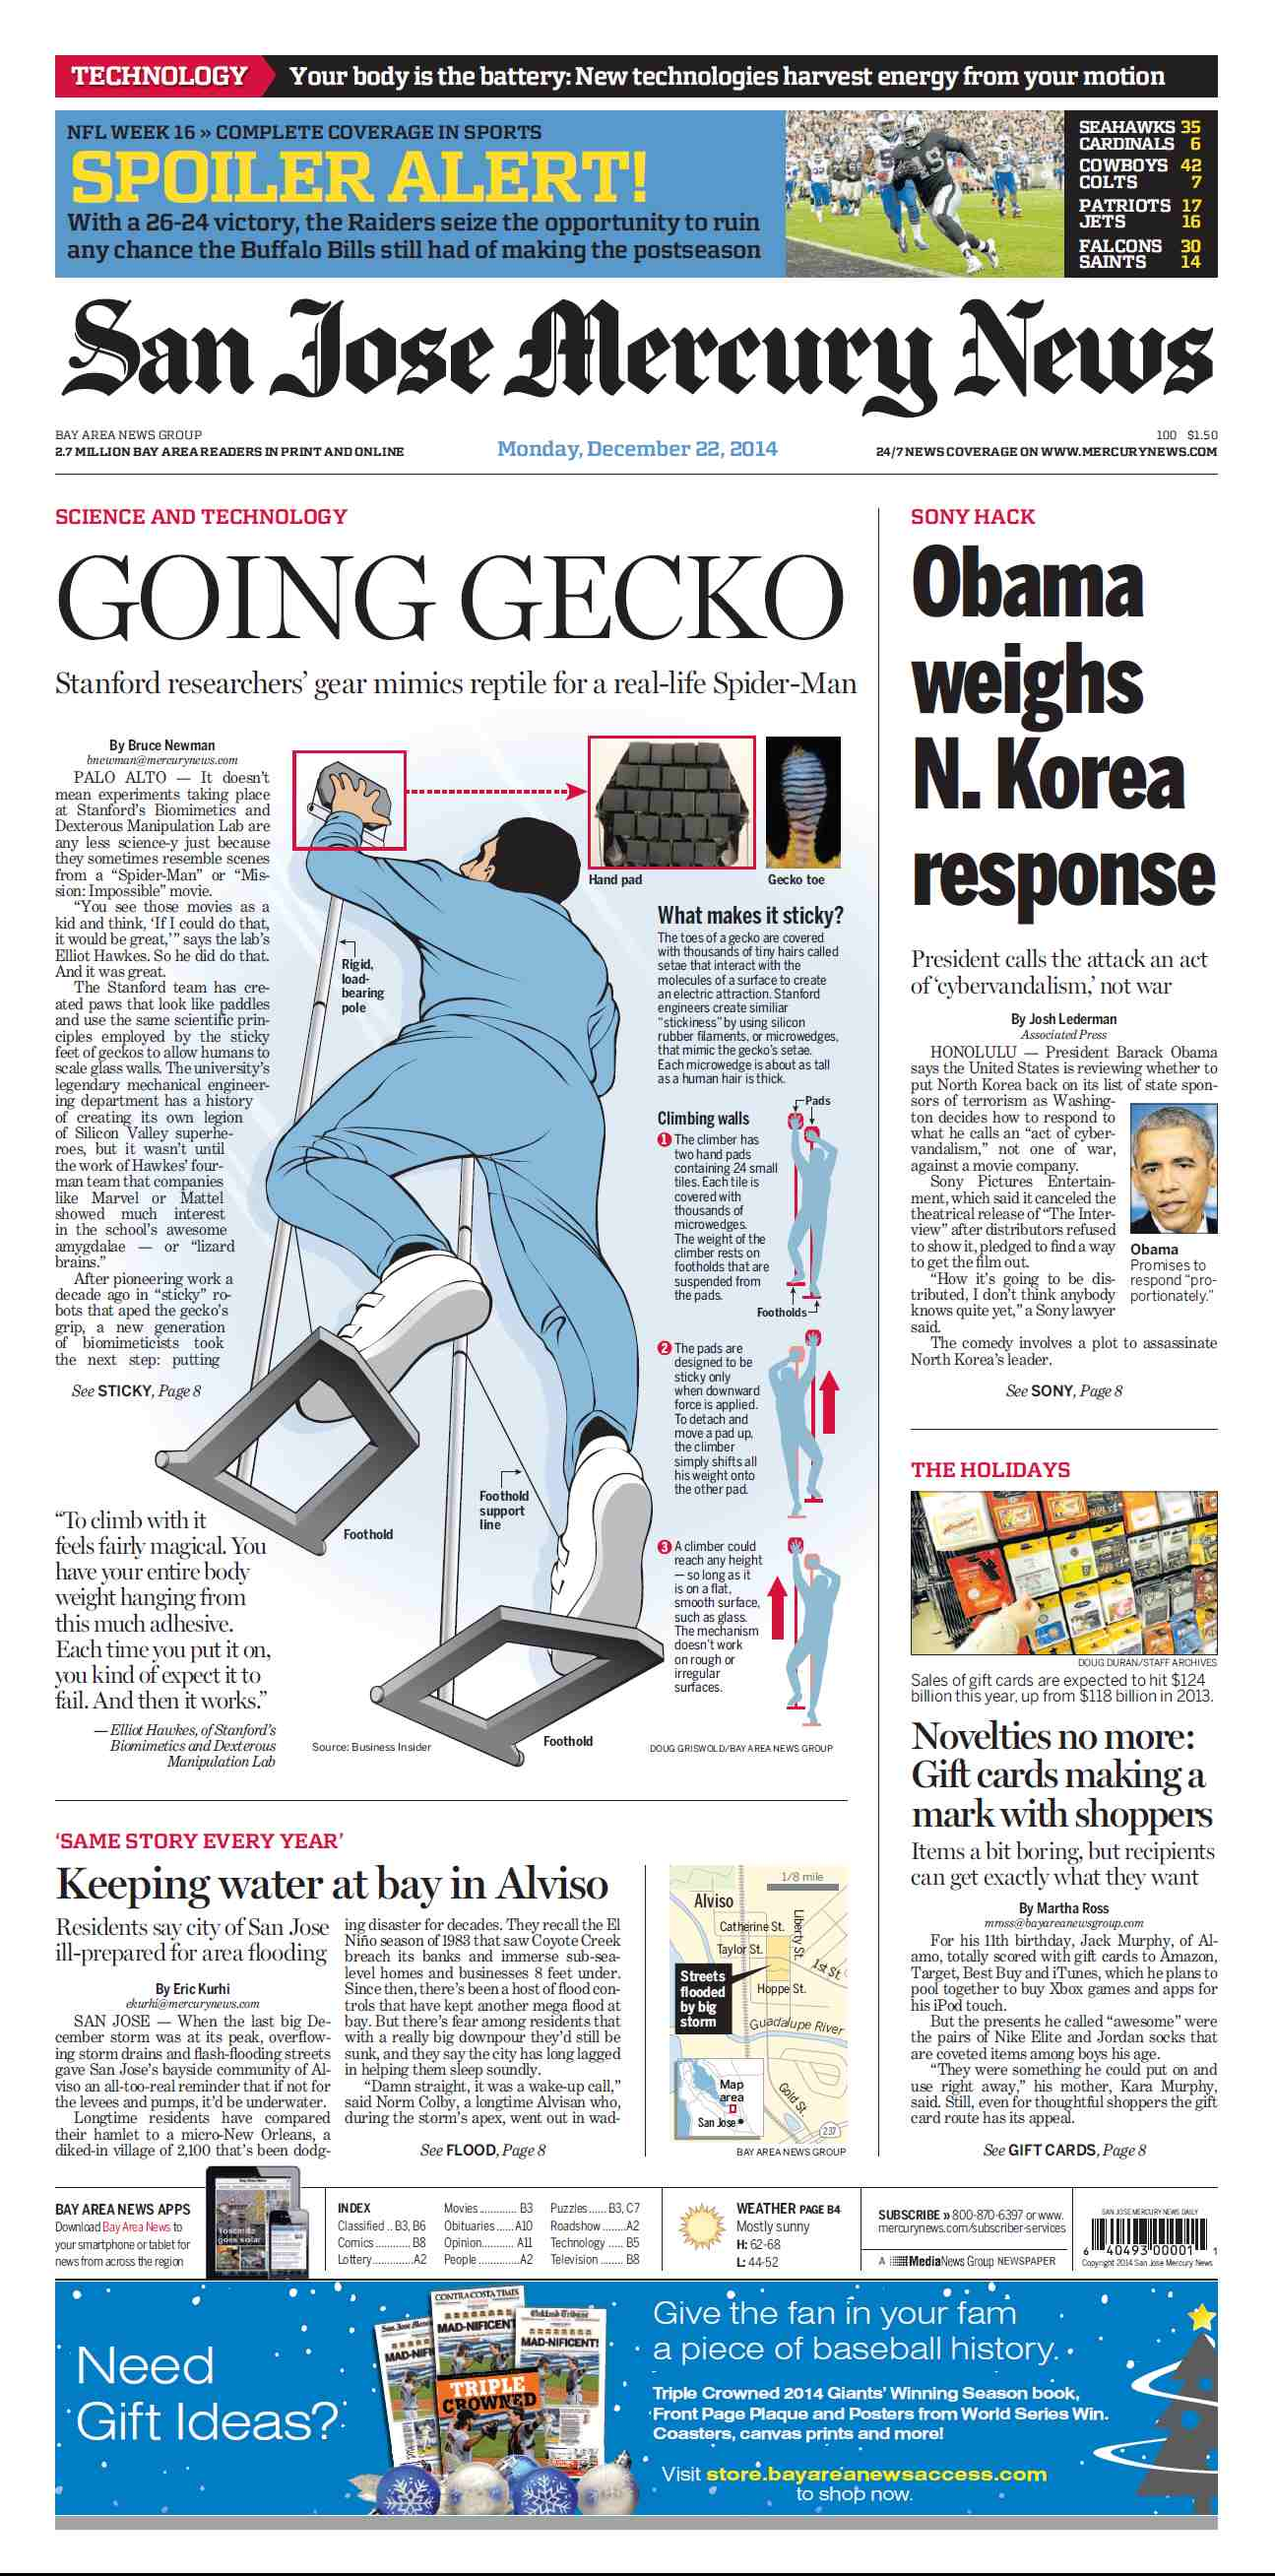 San Jose Mercury News - December 22, 2014 free download